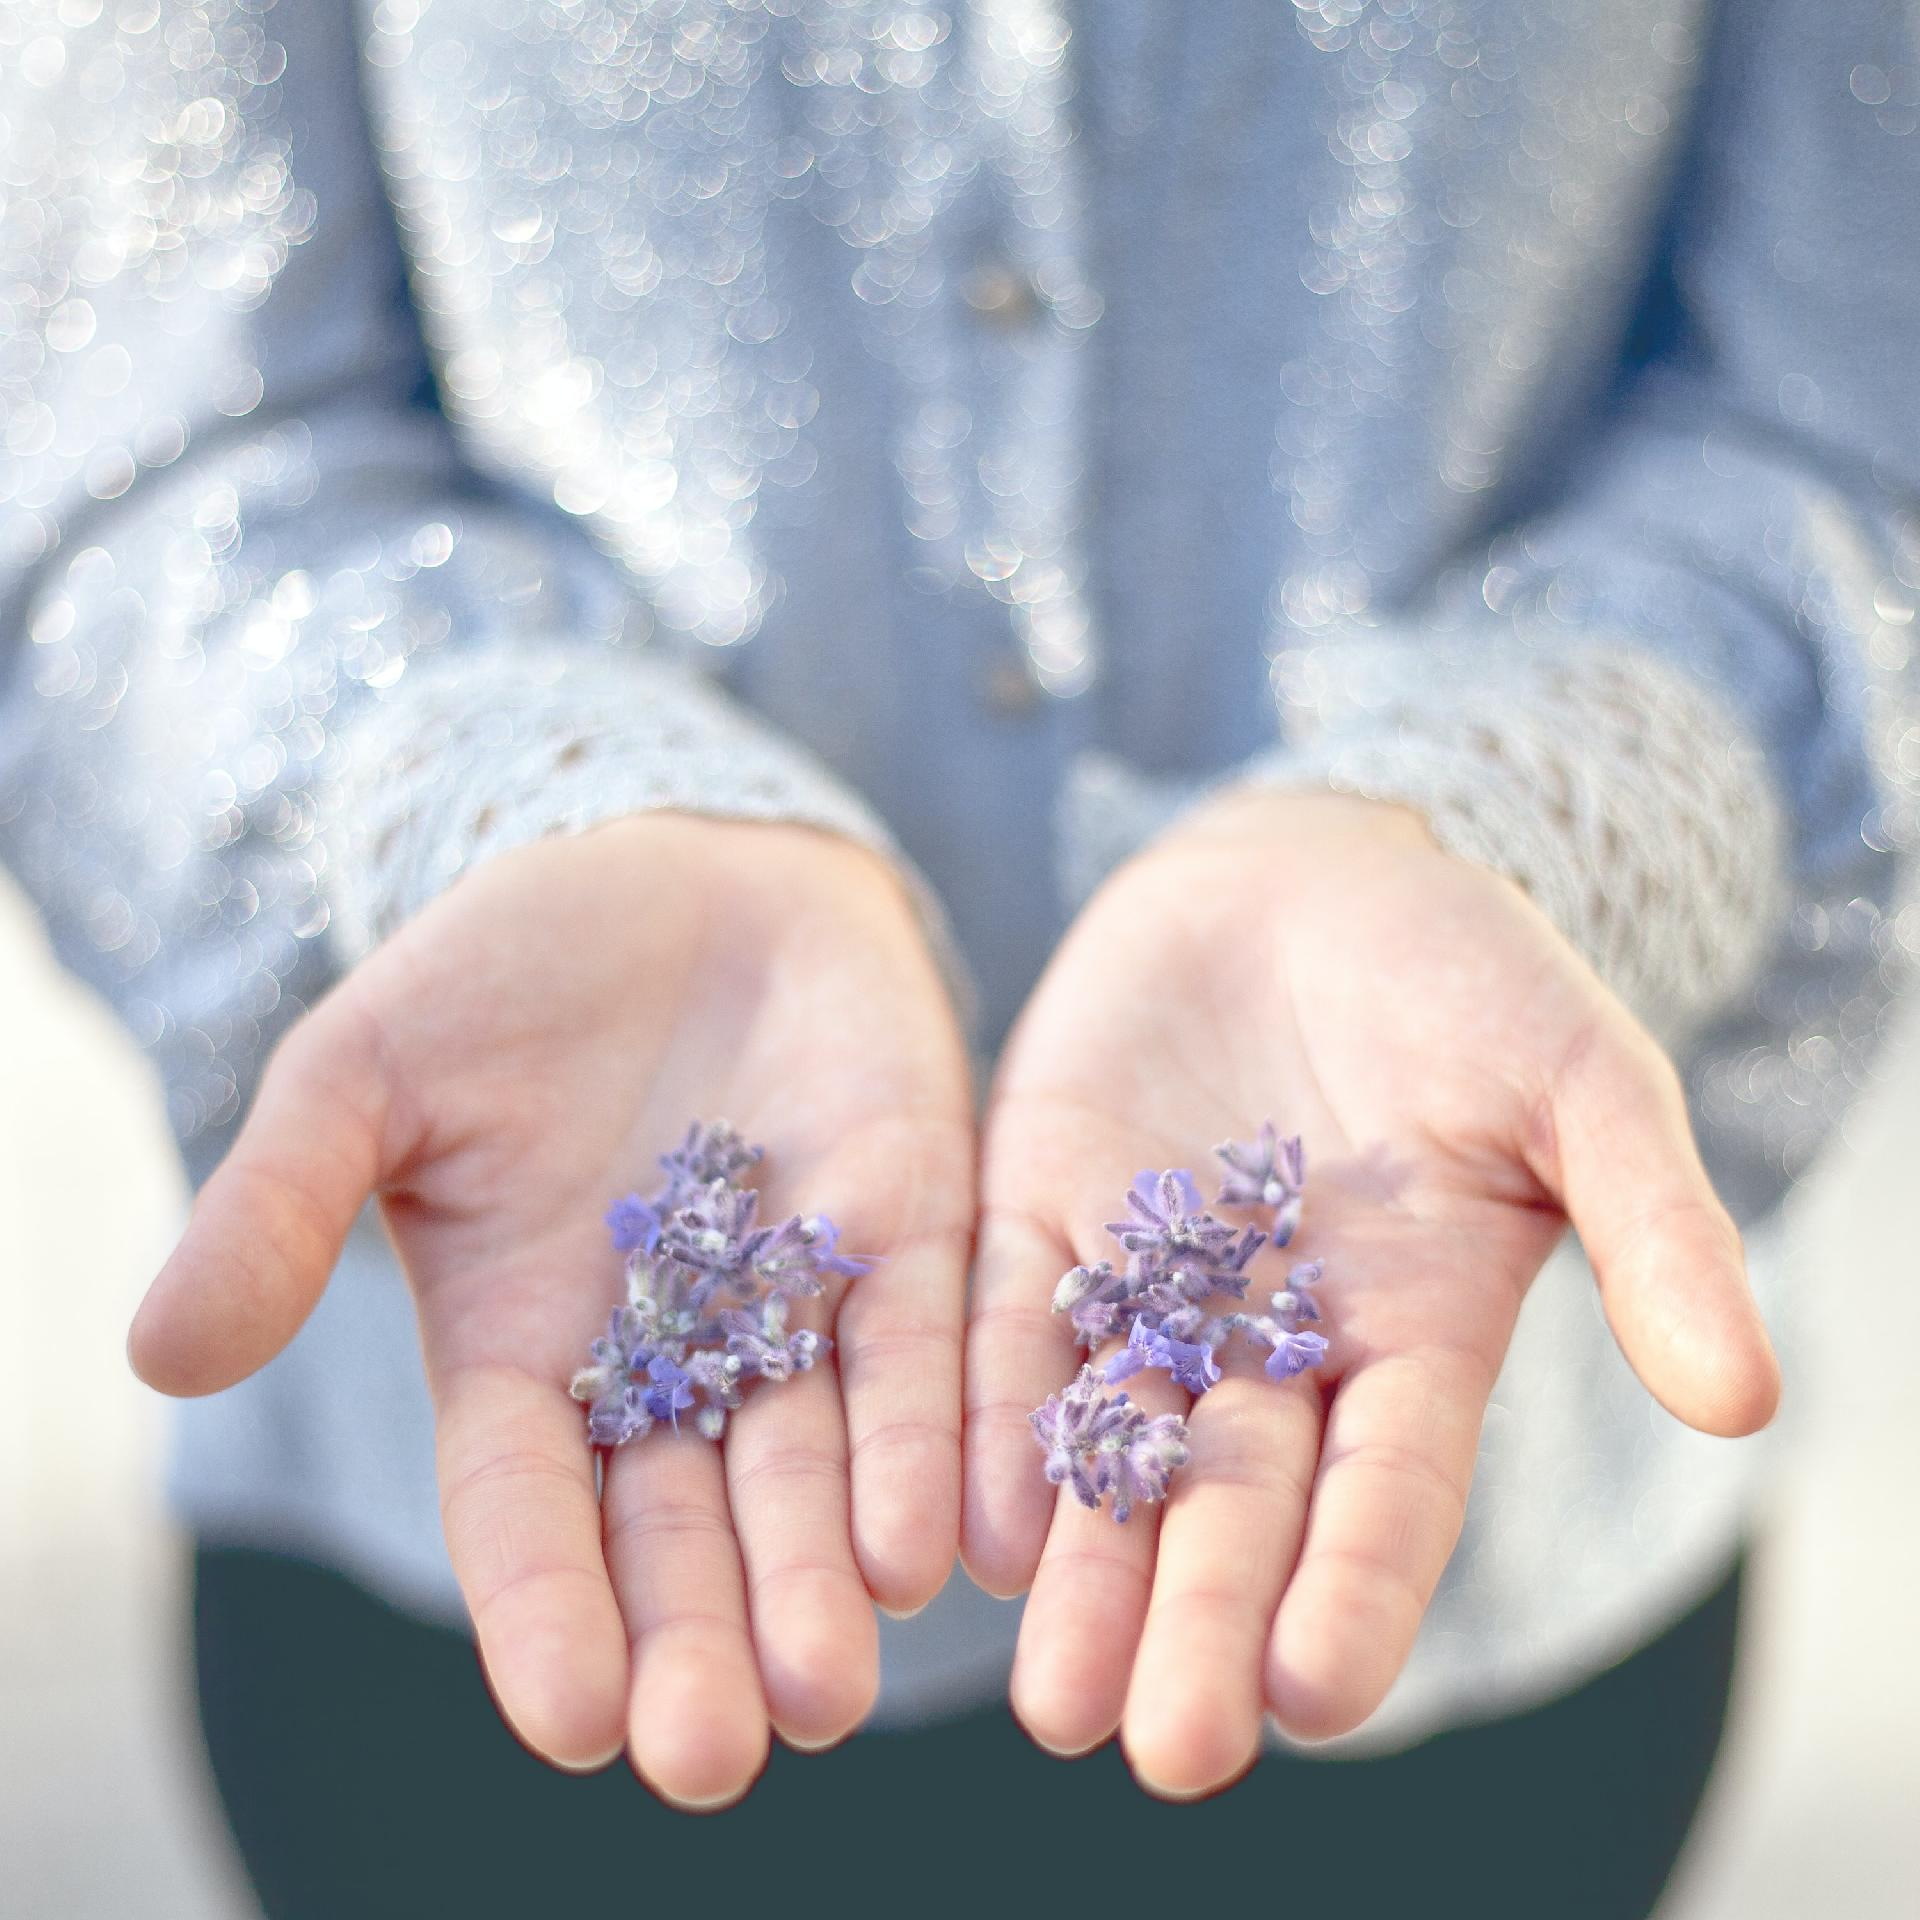 The Benefits of Lavender Oil